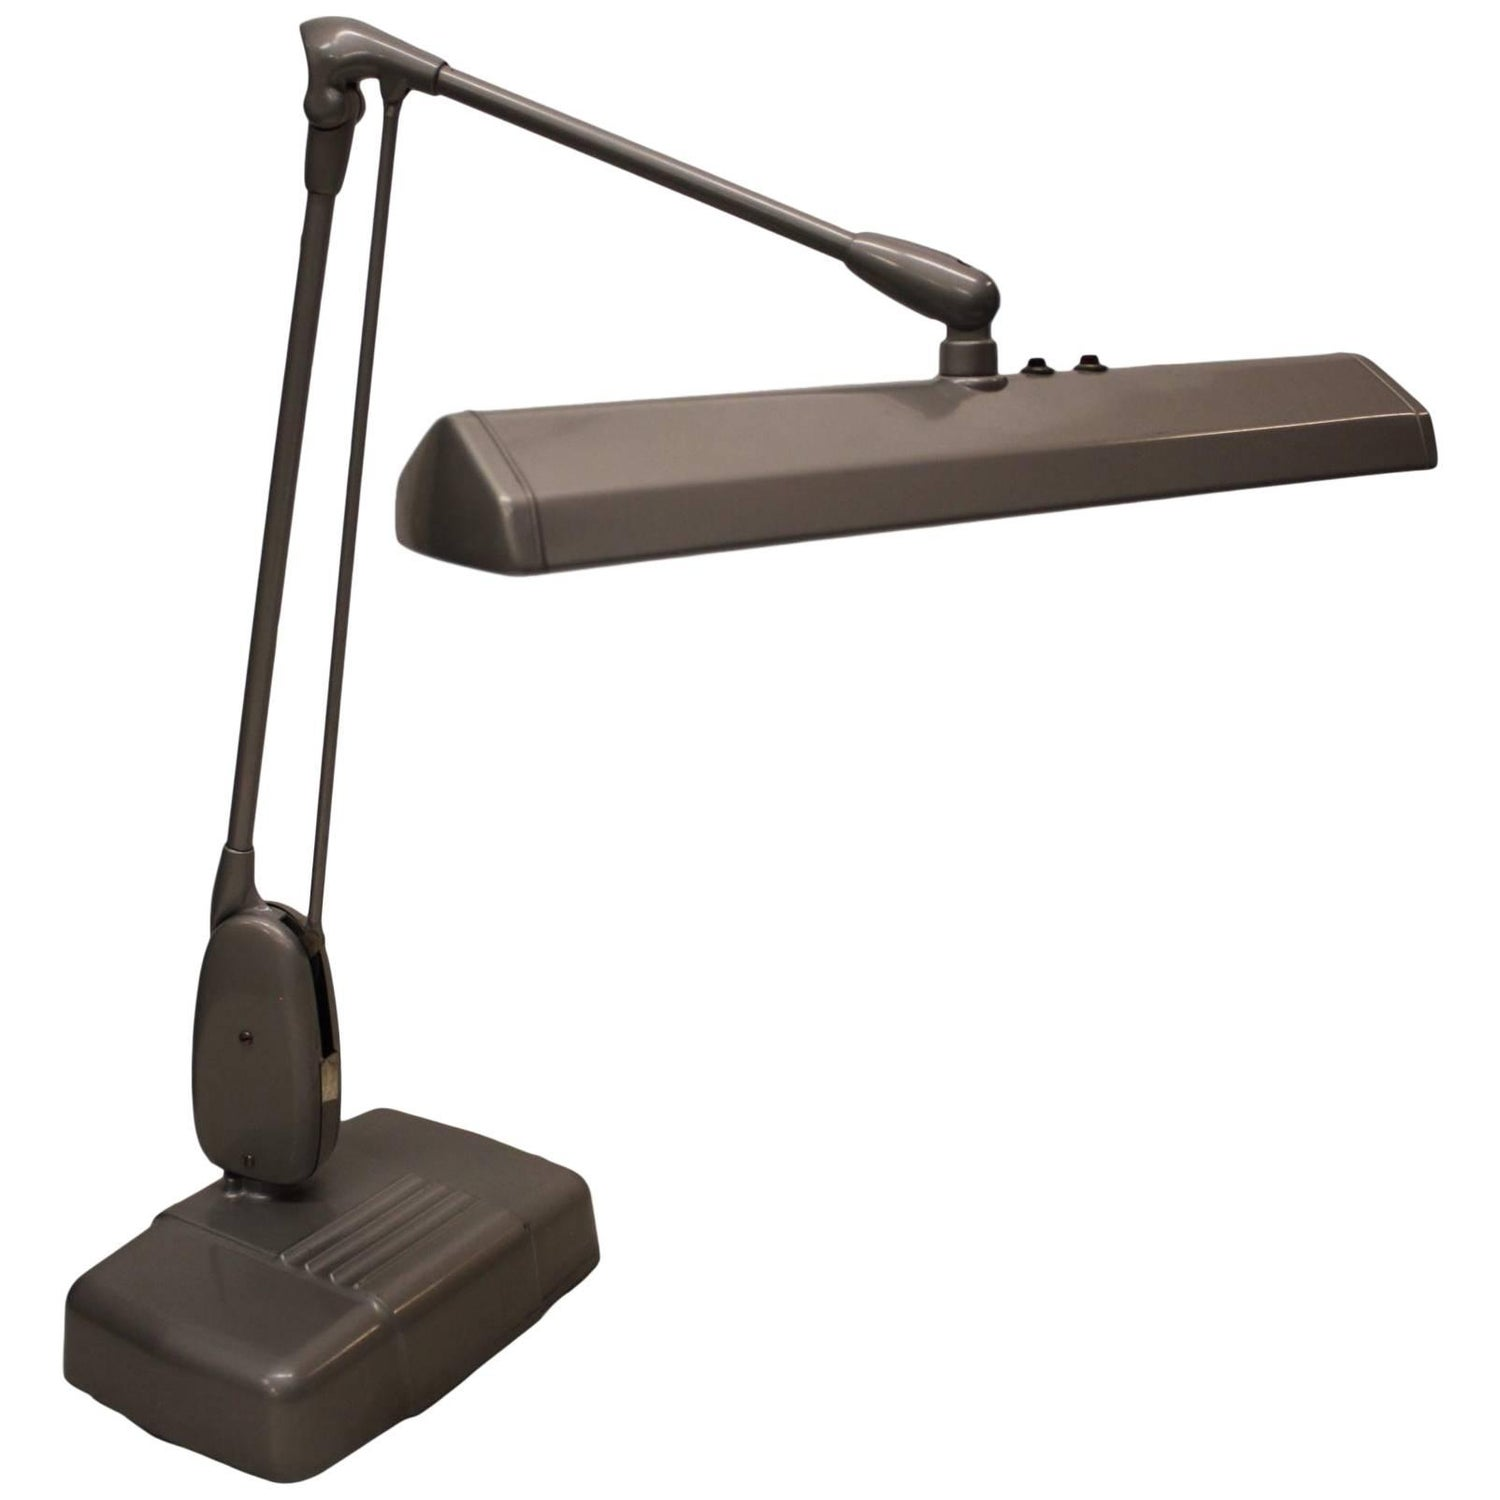 Stunning vintage dazor floating lamp with magnifier for sale at vintage 1950s mid century modern industrial dazor floating articulated desk lamp geotapseo Gallery